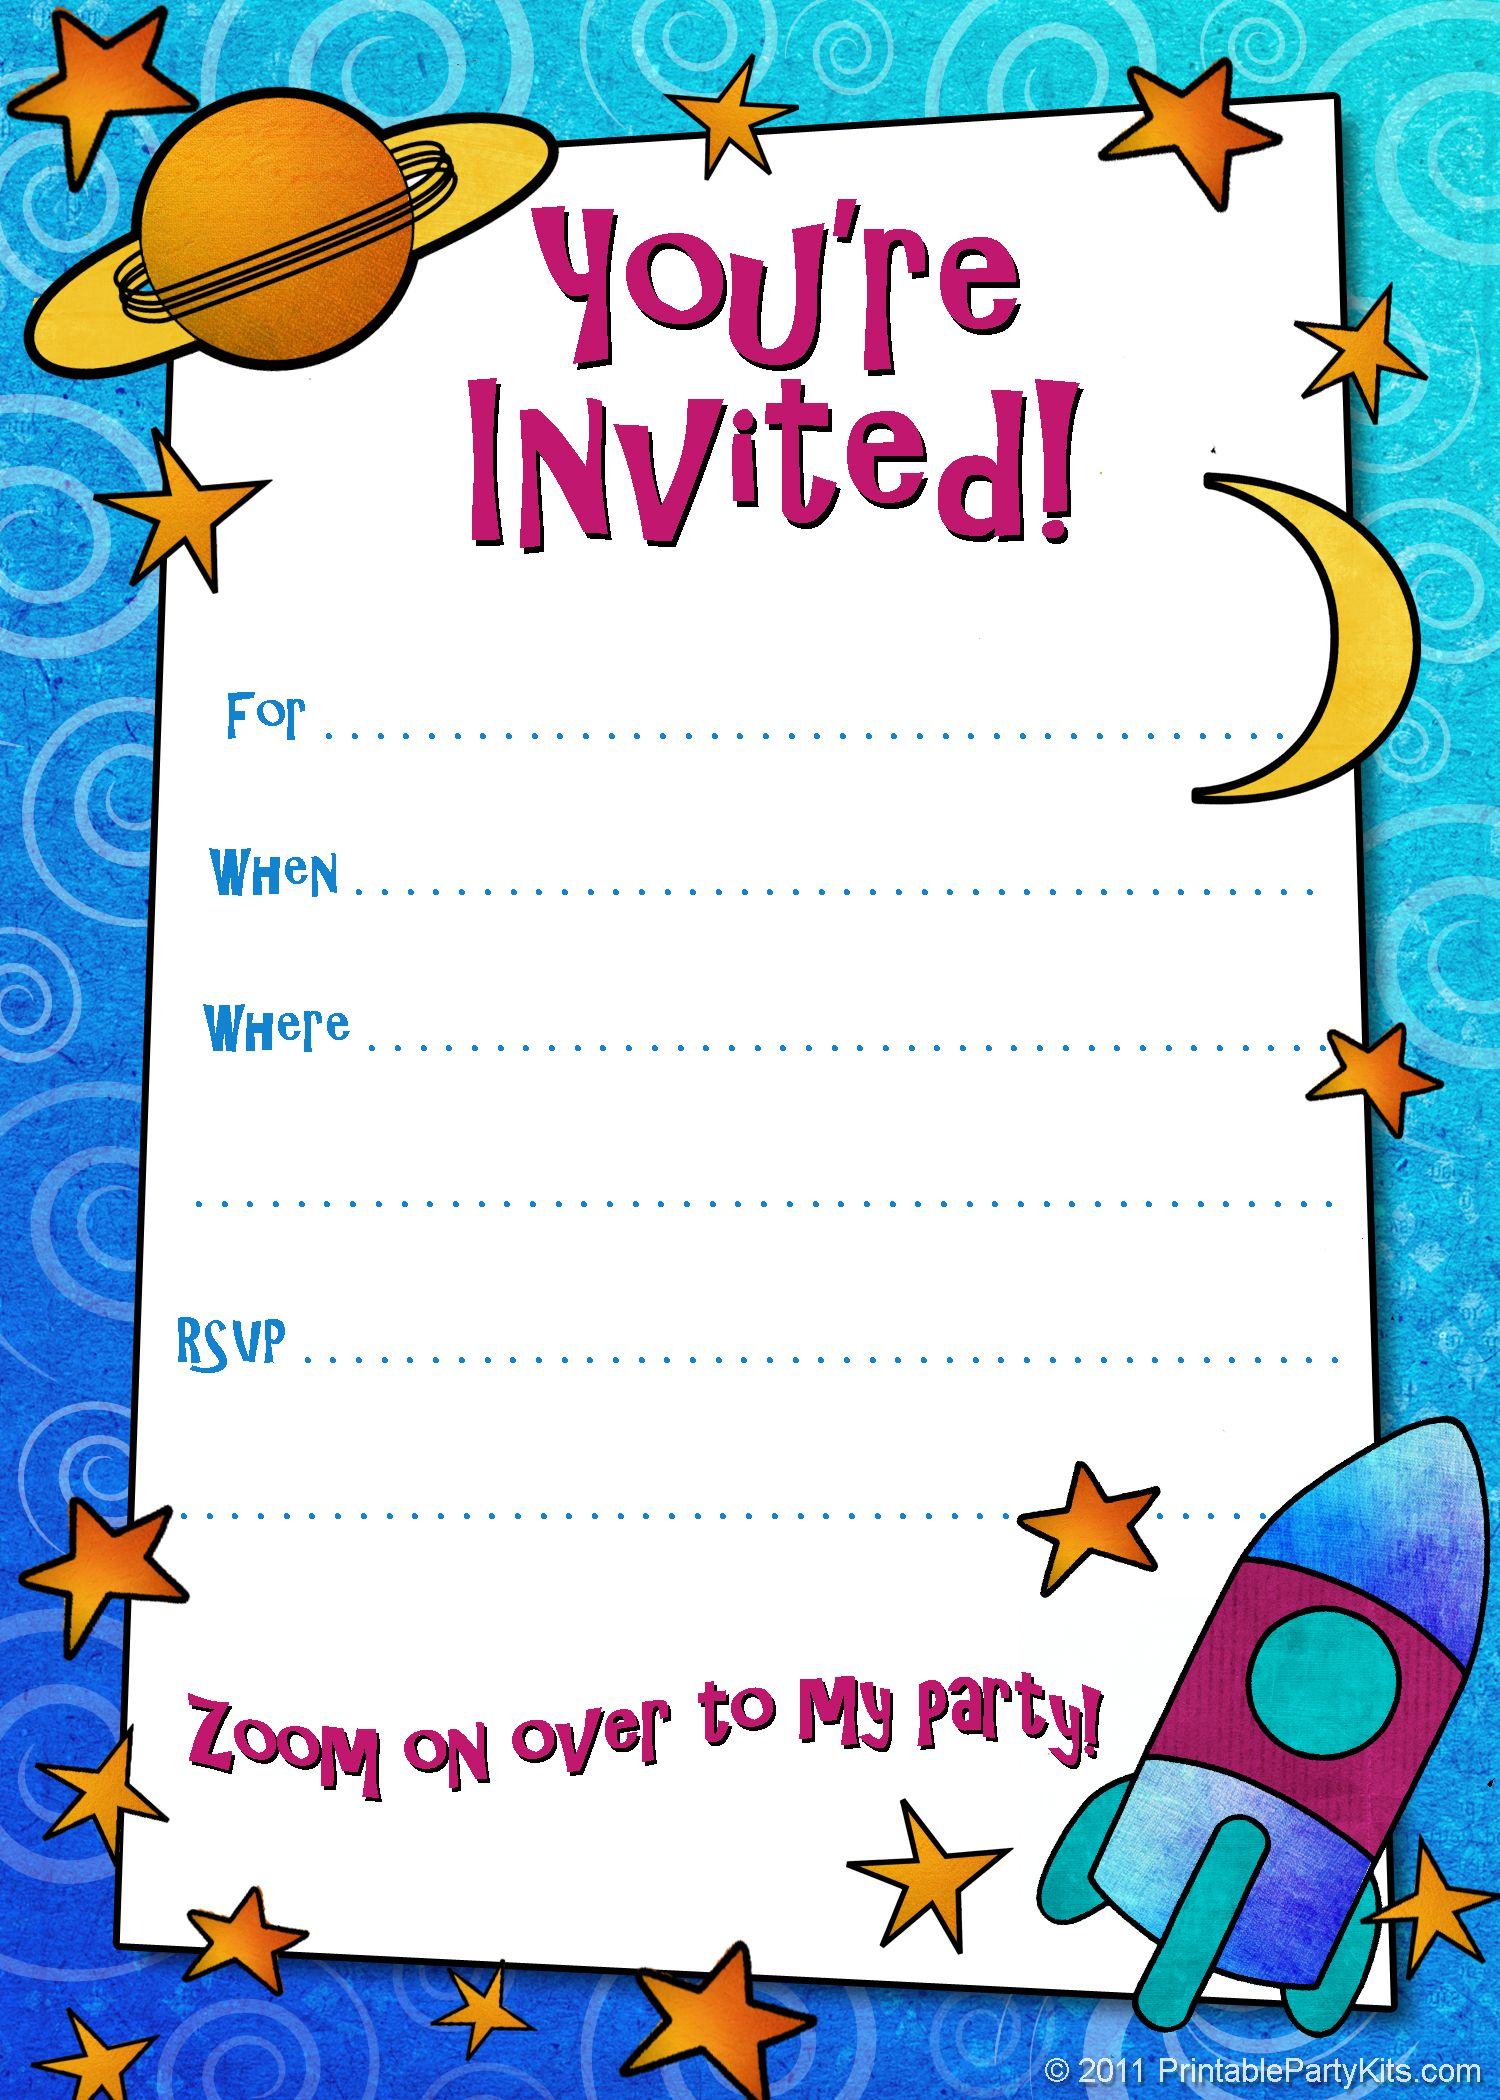 Free Printable Boys Birthday Party Invitations | Birthday party ...